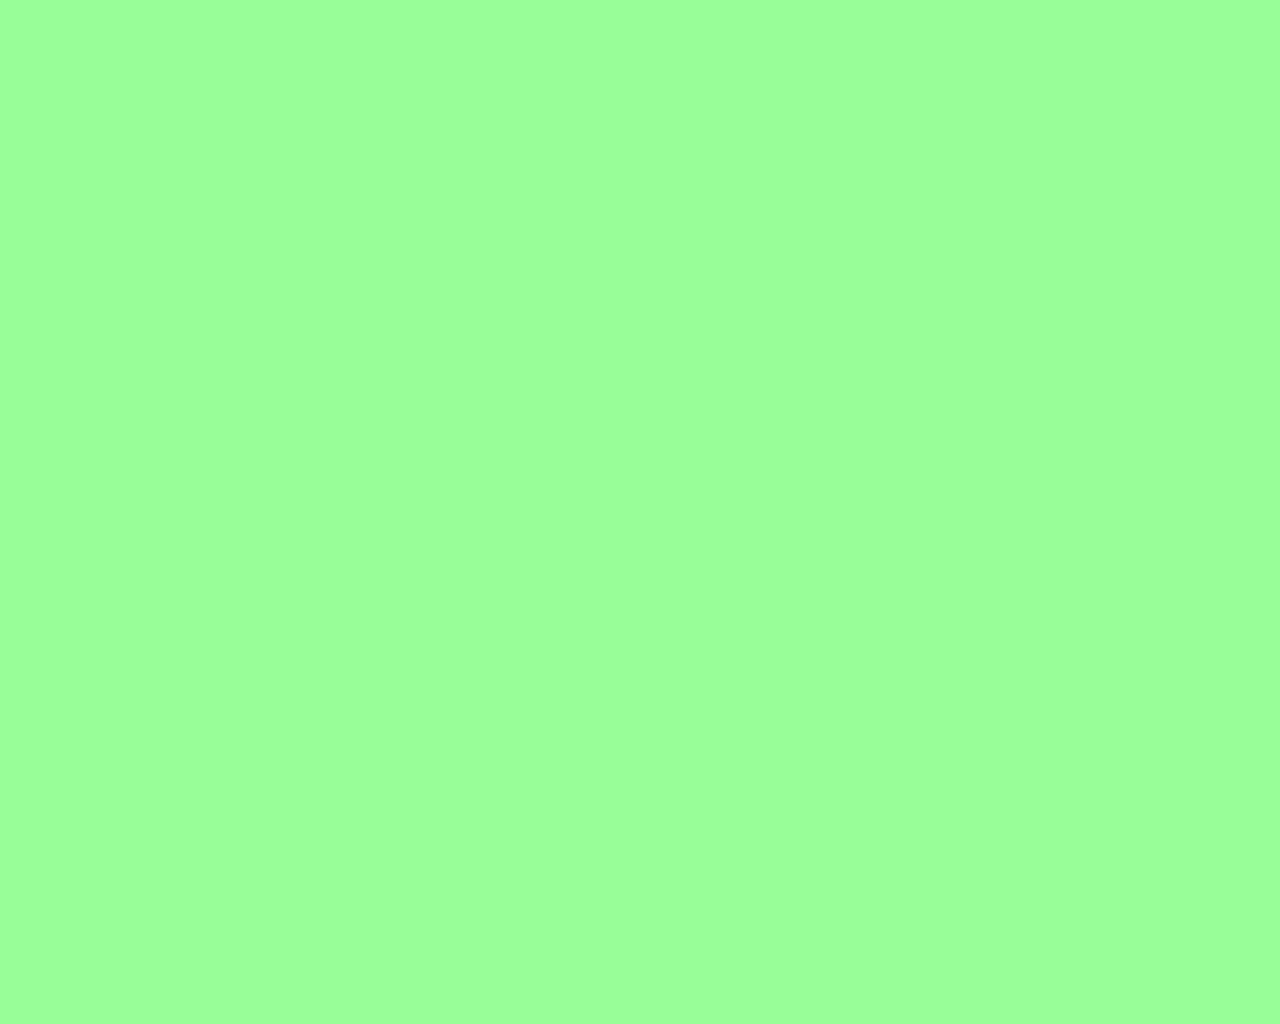 1280x1024 mint green solid color background